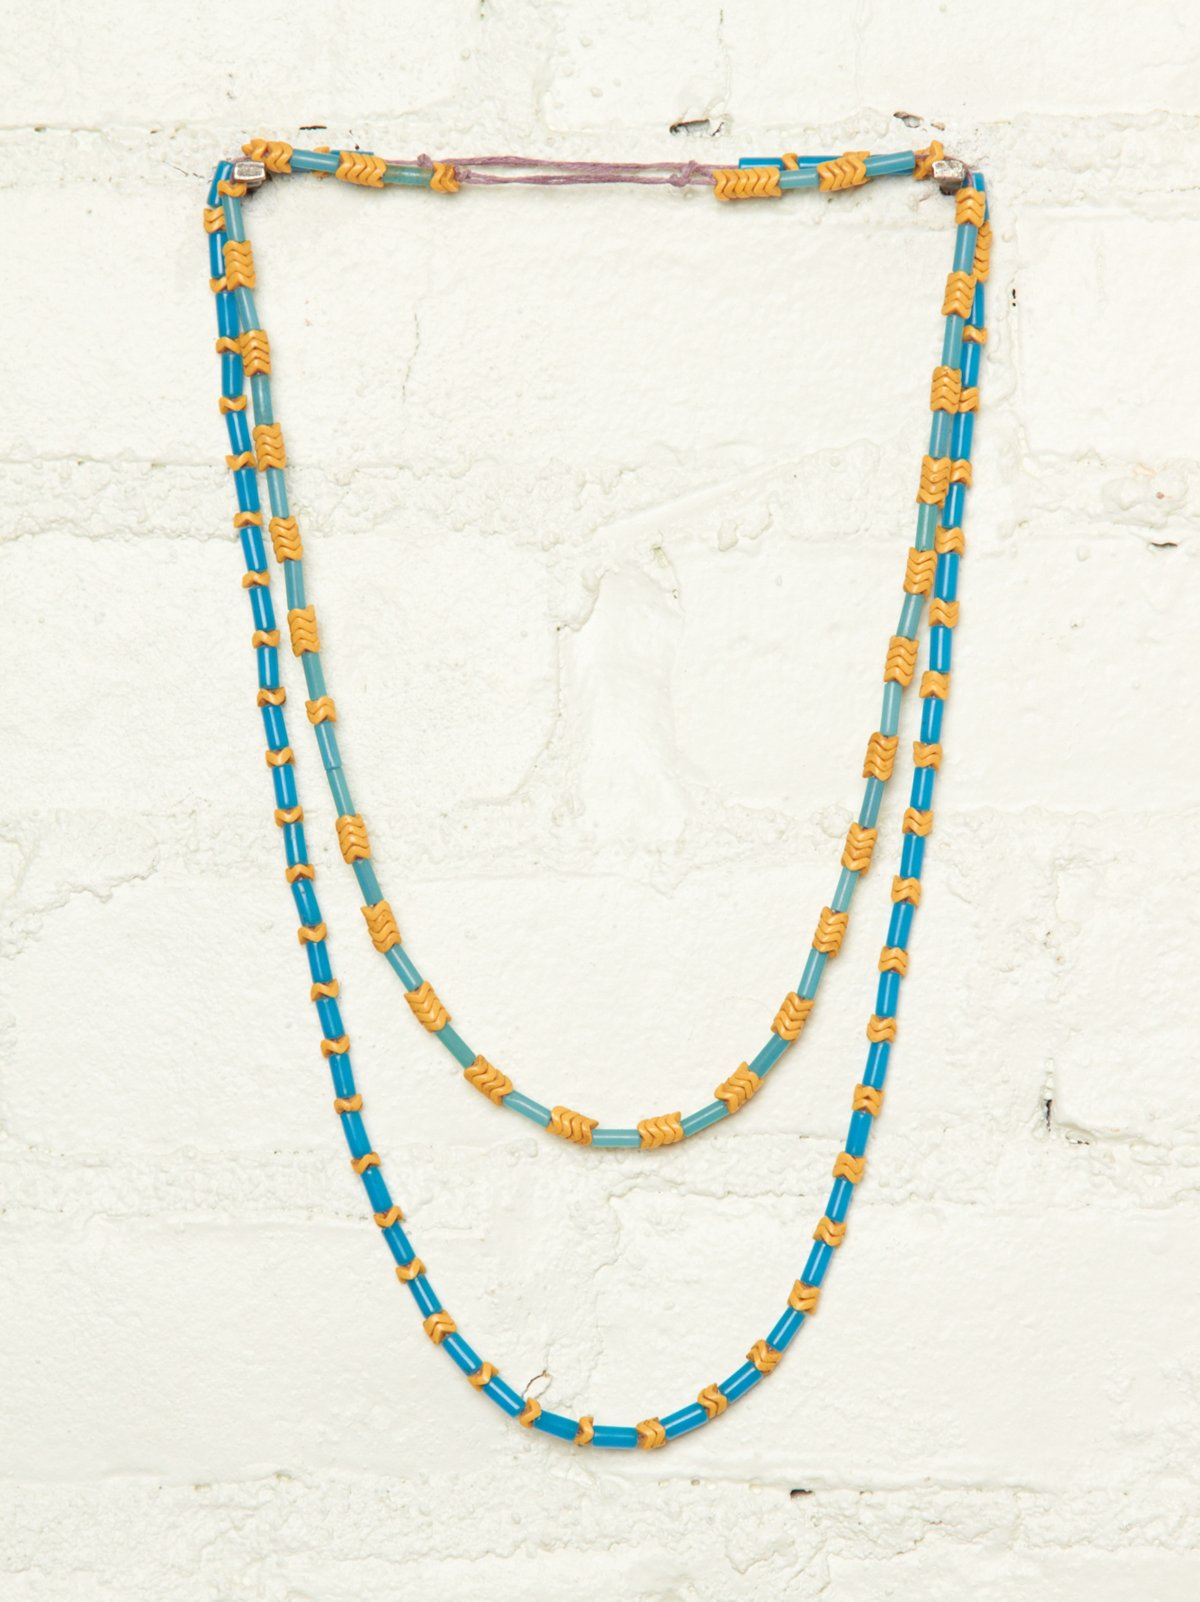 Vintage Blue and Yellow Beaded Necklaces